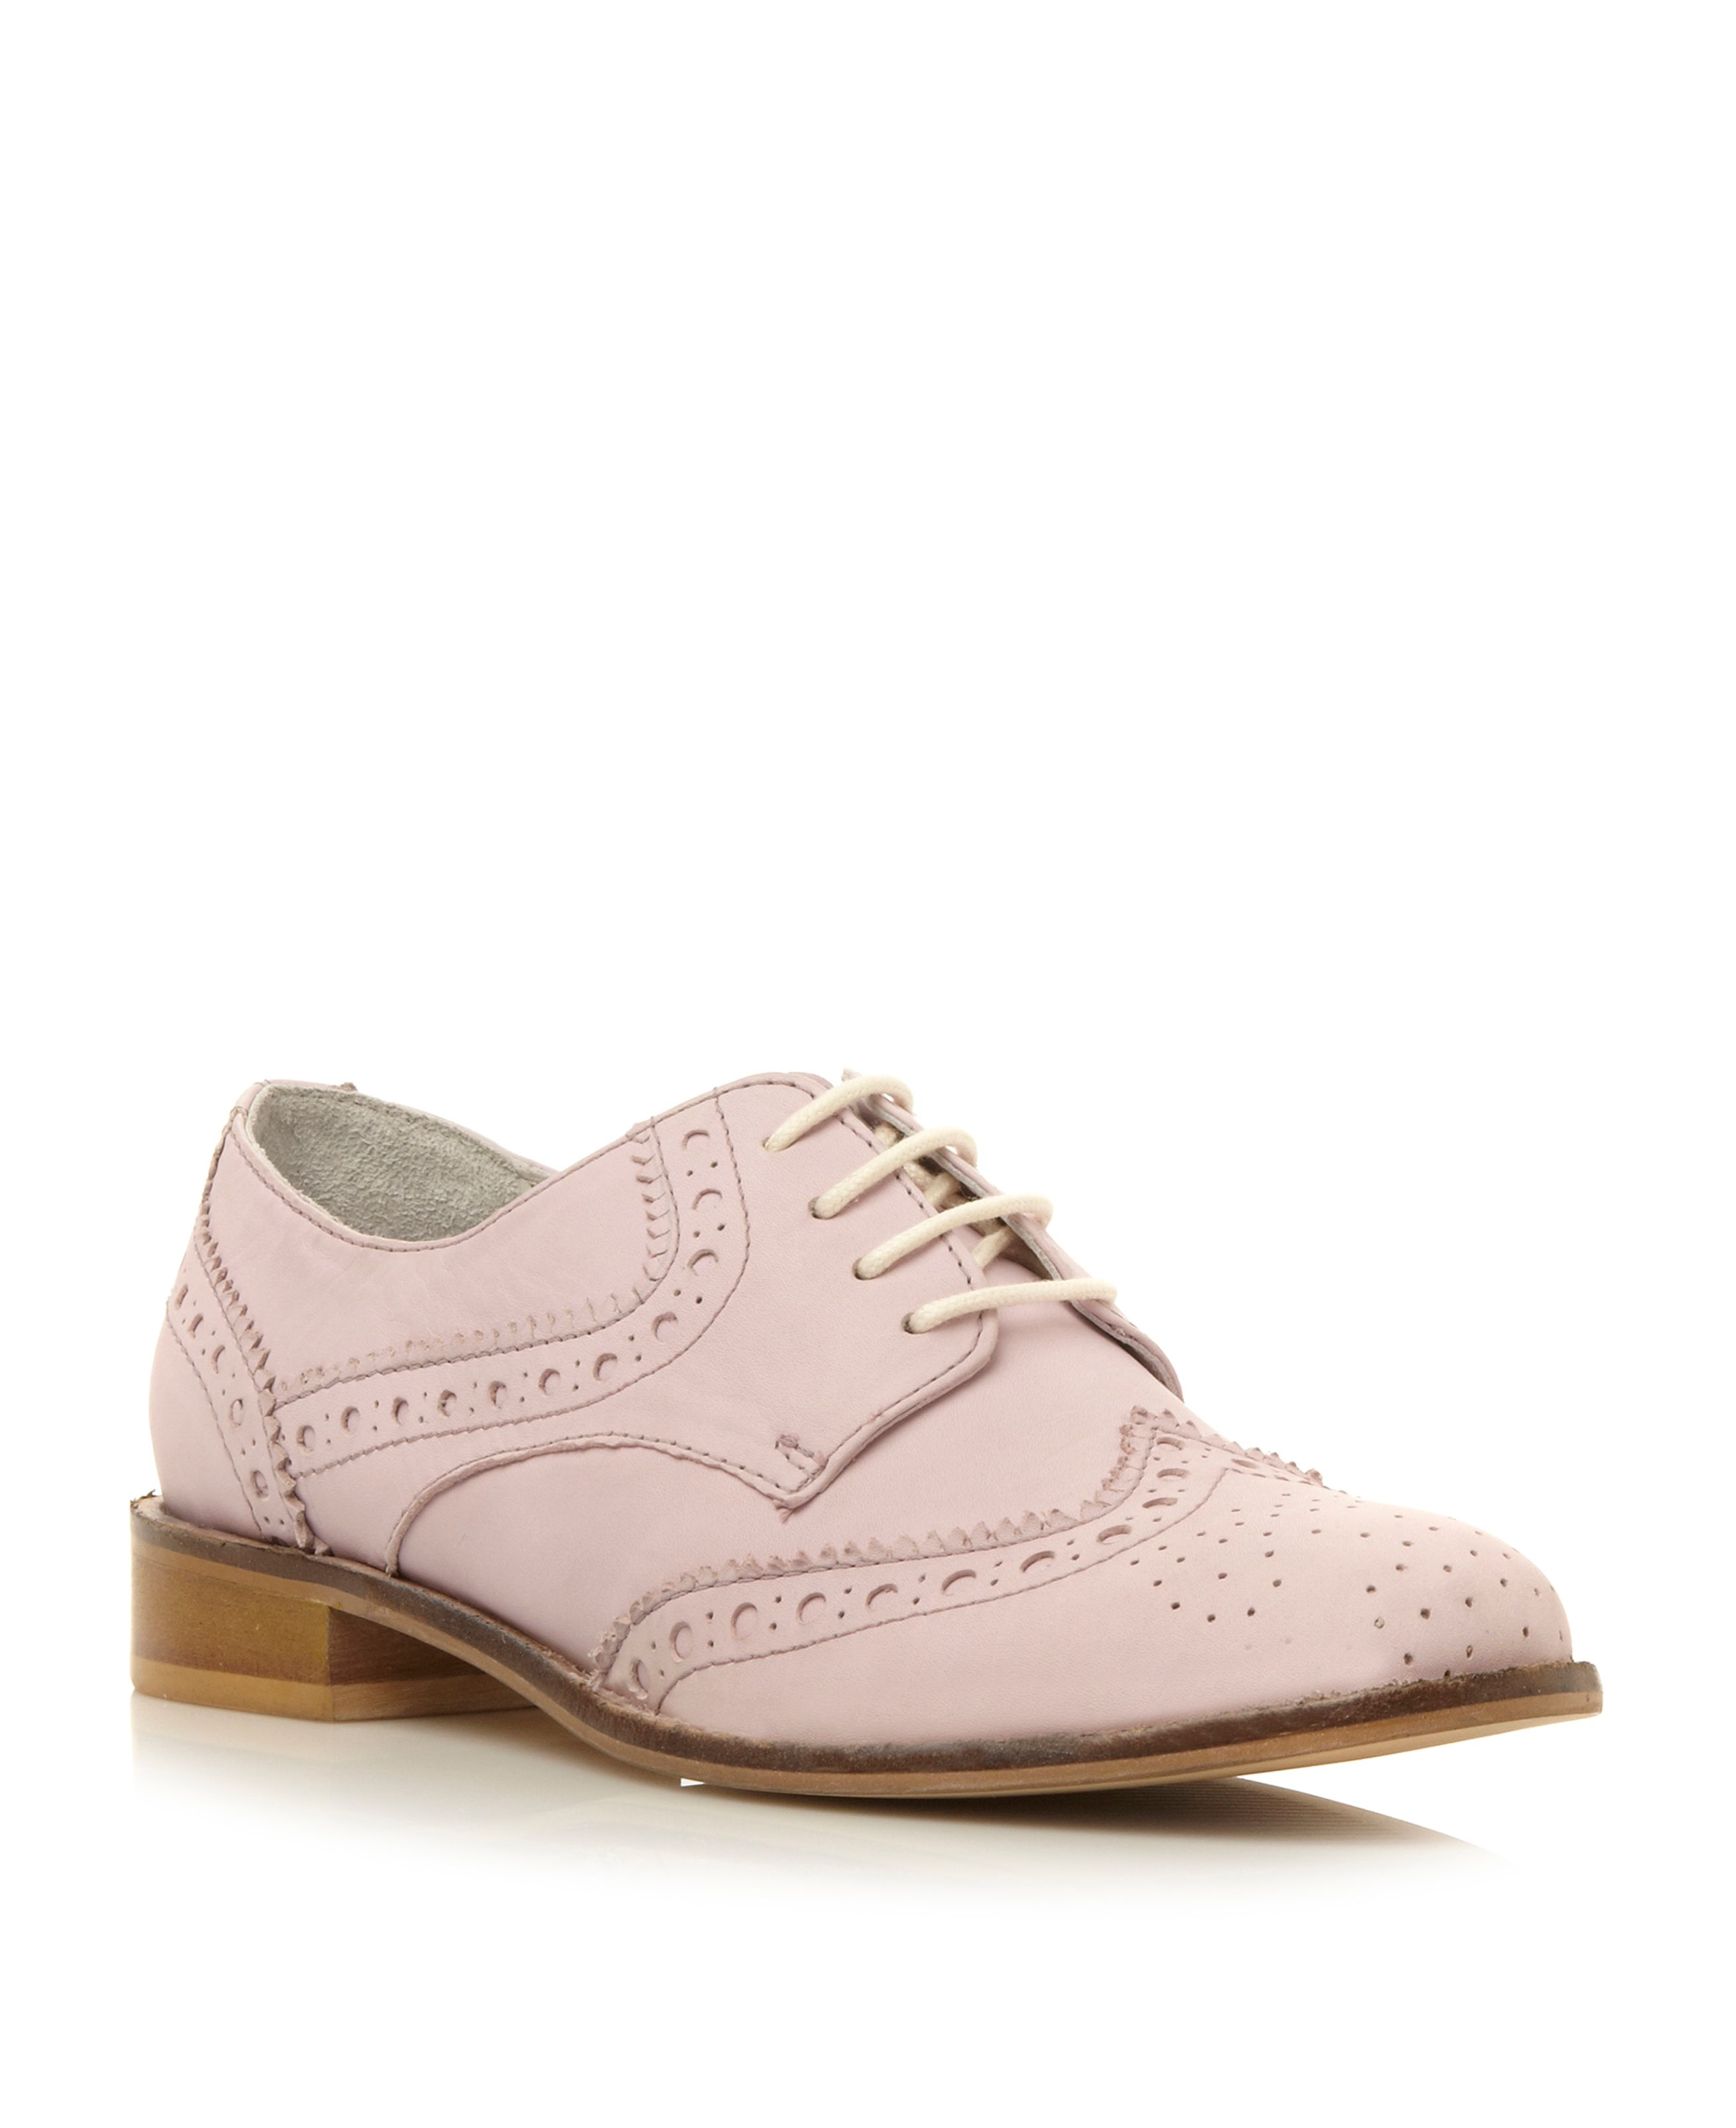 Langbury structured lace up brogues